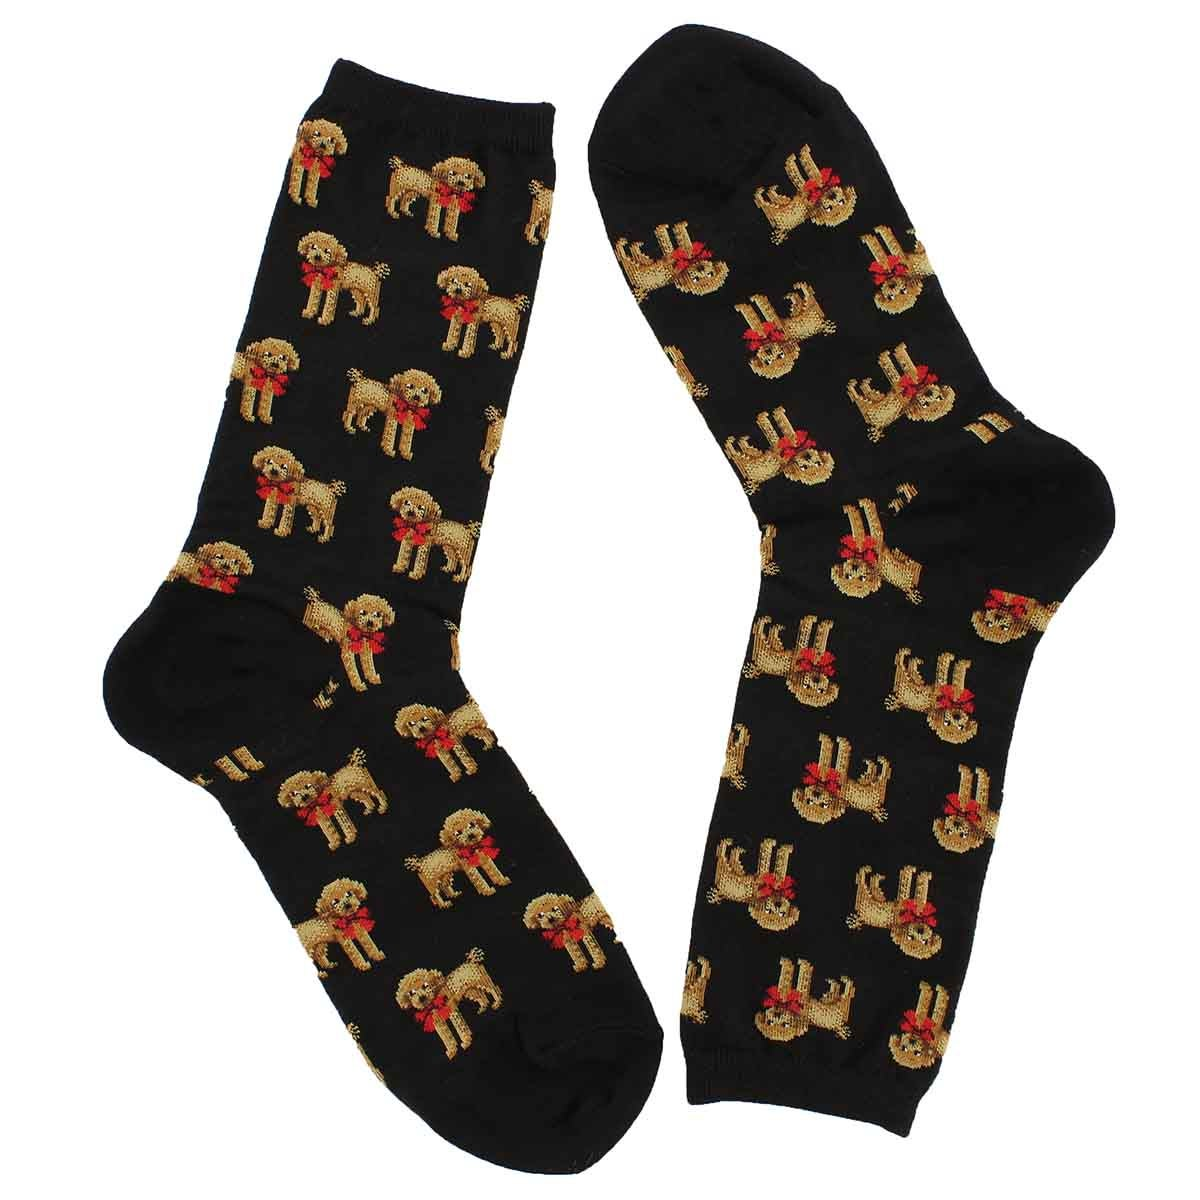 Lds Poodle and Bow black printed sock